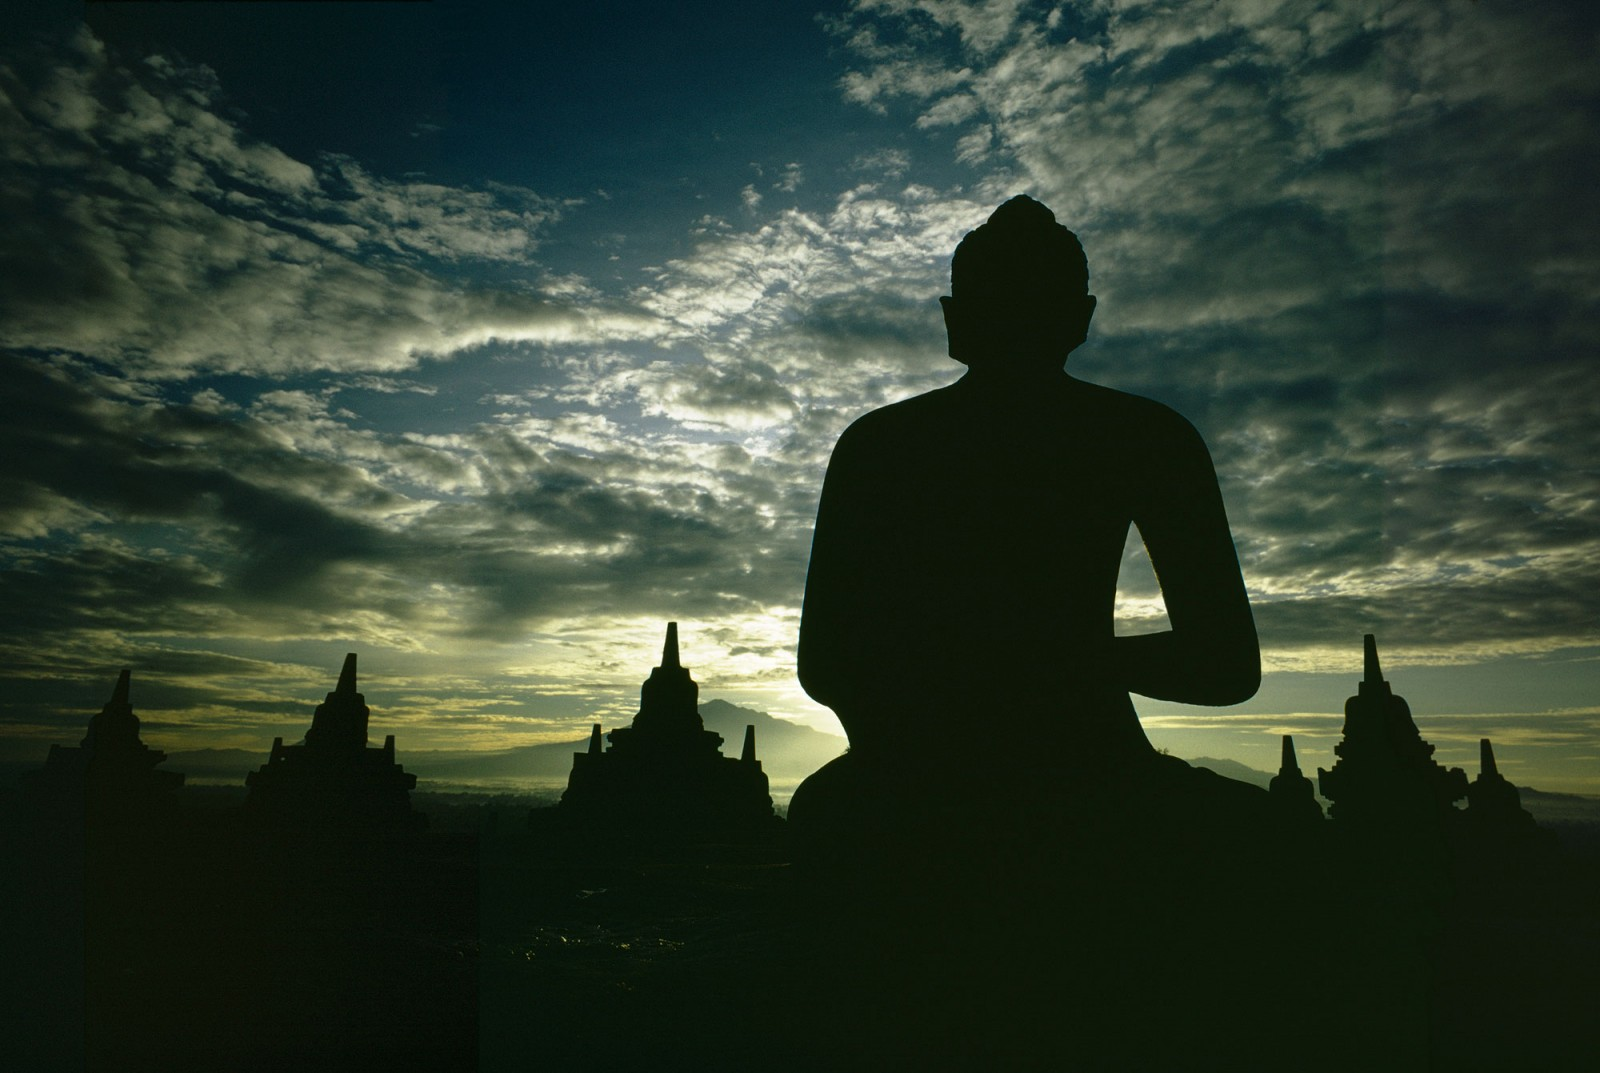 A statue of Buddha looks out over the perforated stupas containing similar icons at Borobudur in central Java 1971. Five hundred and four large Buddha statues adorn this 9th-century Indonesian monument.